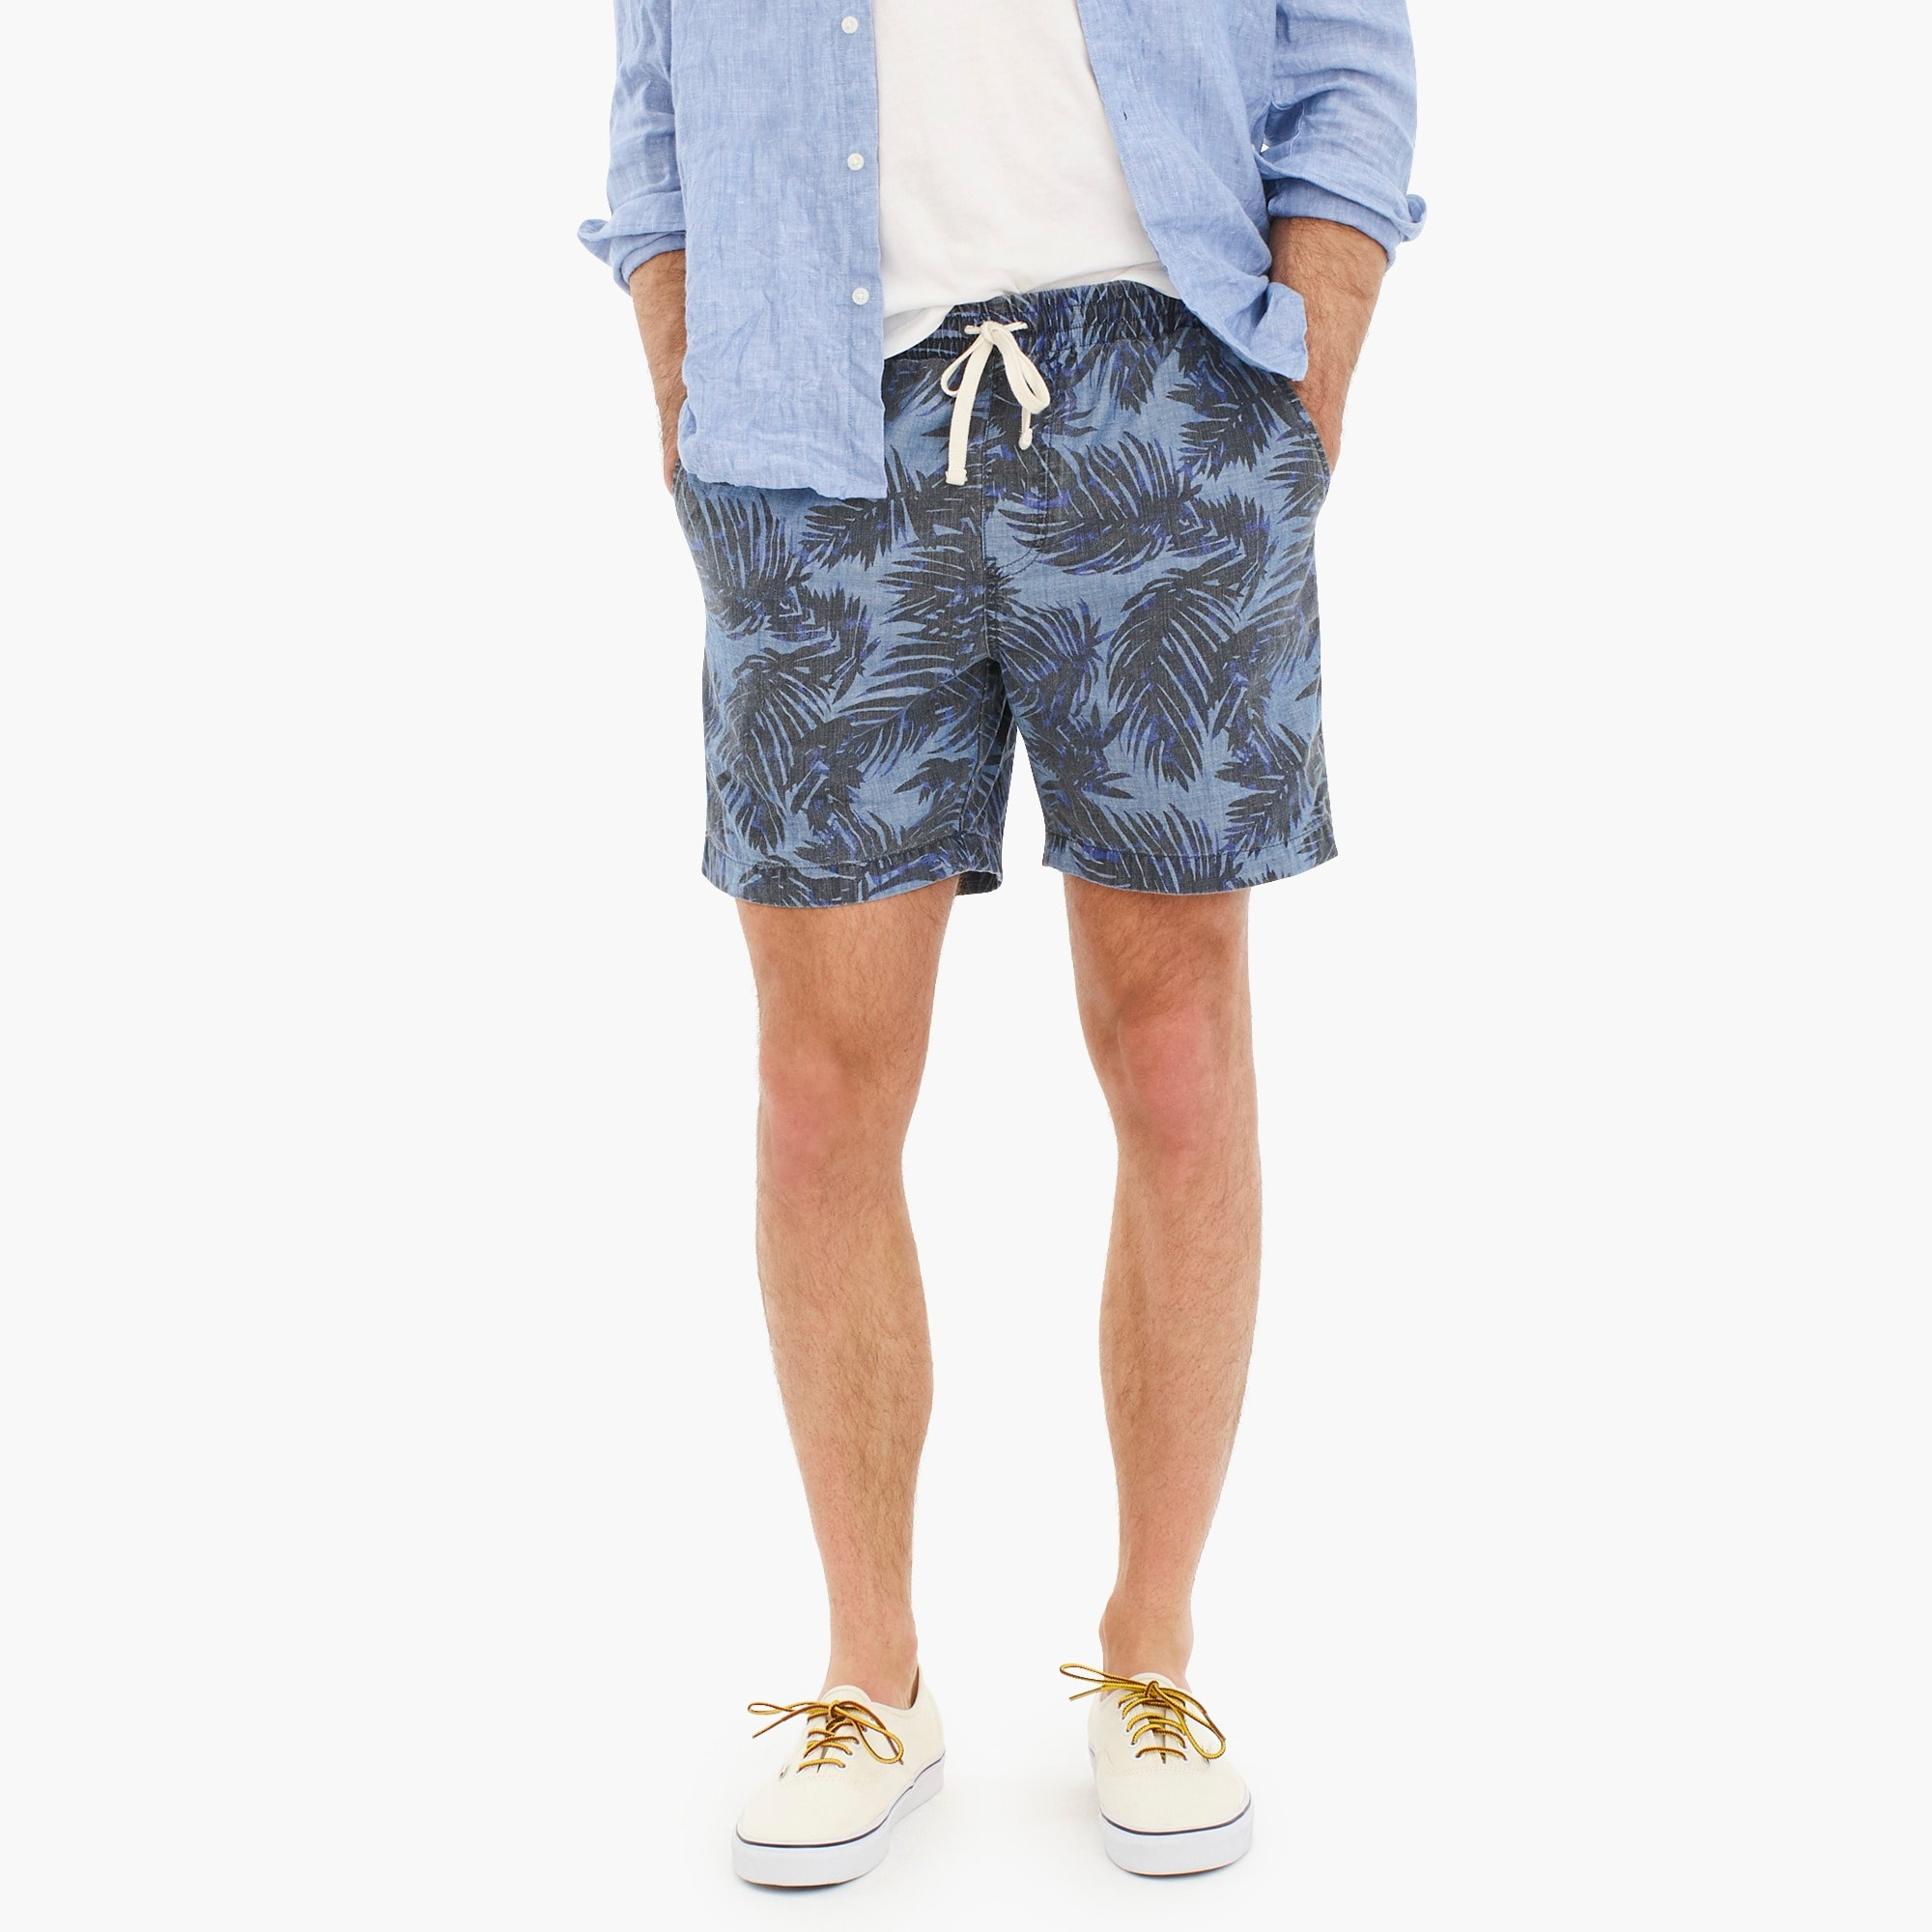 mens Dock short in indigo palm print